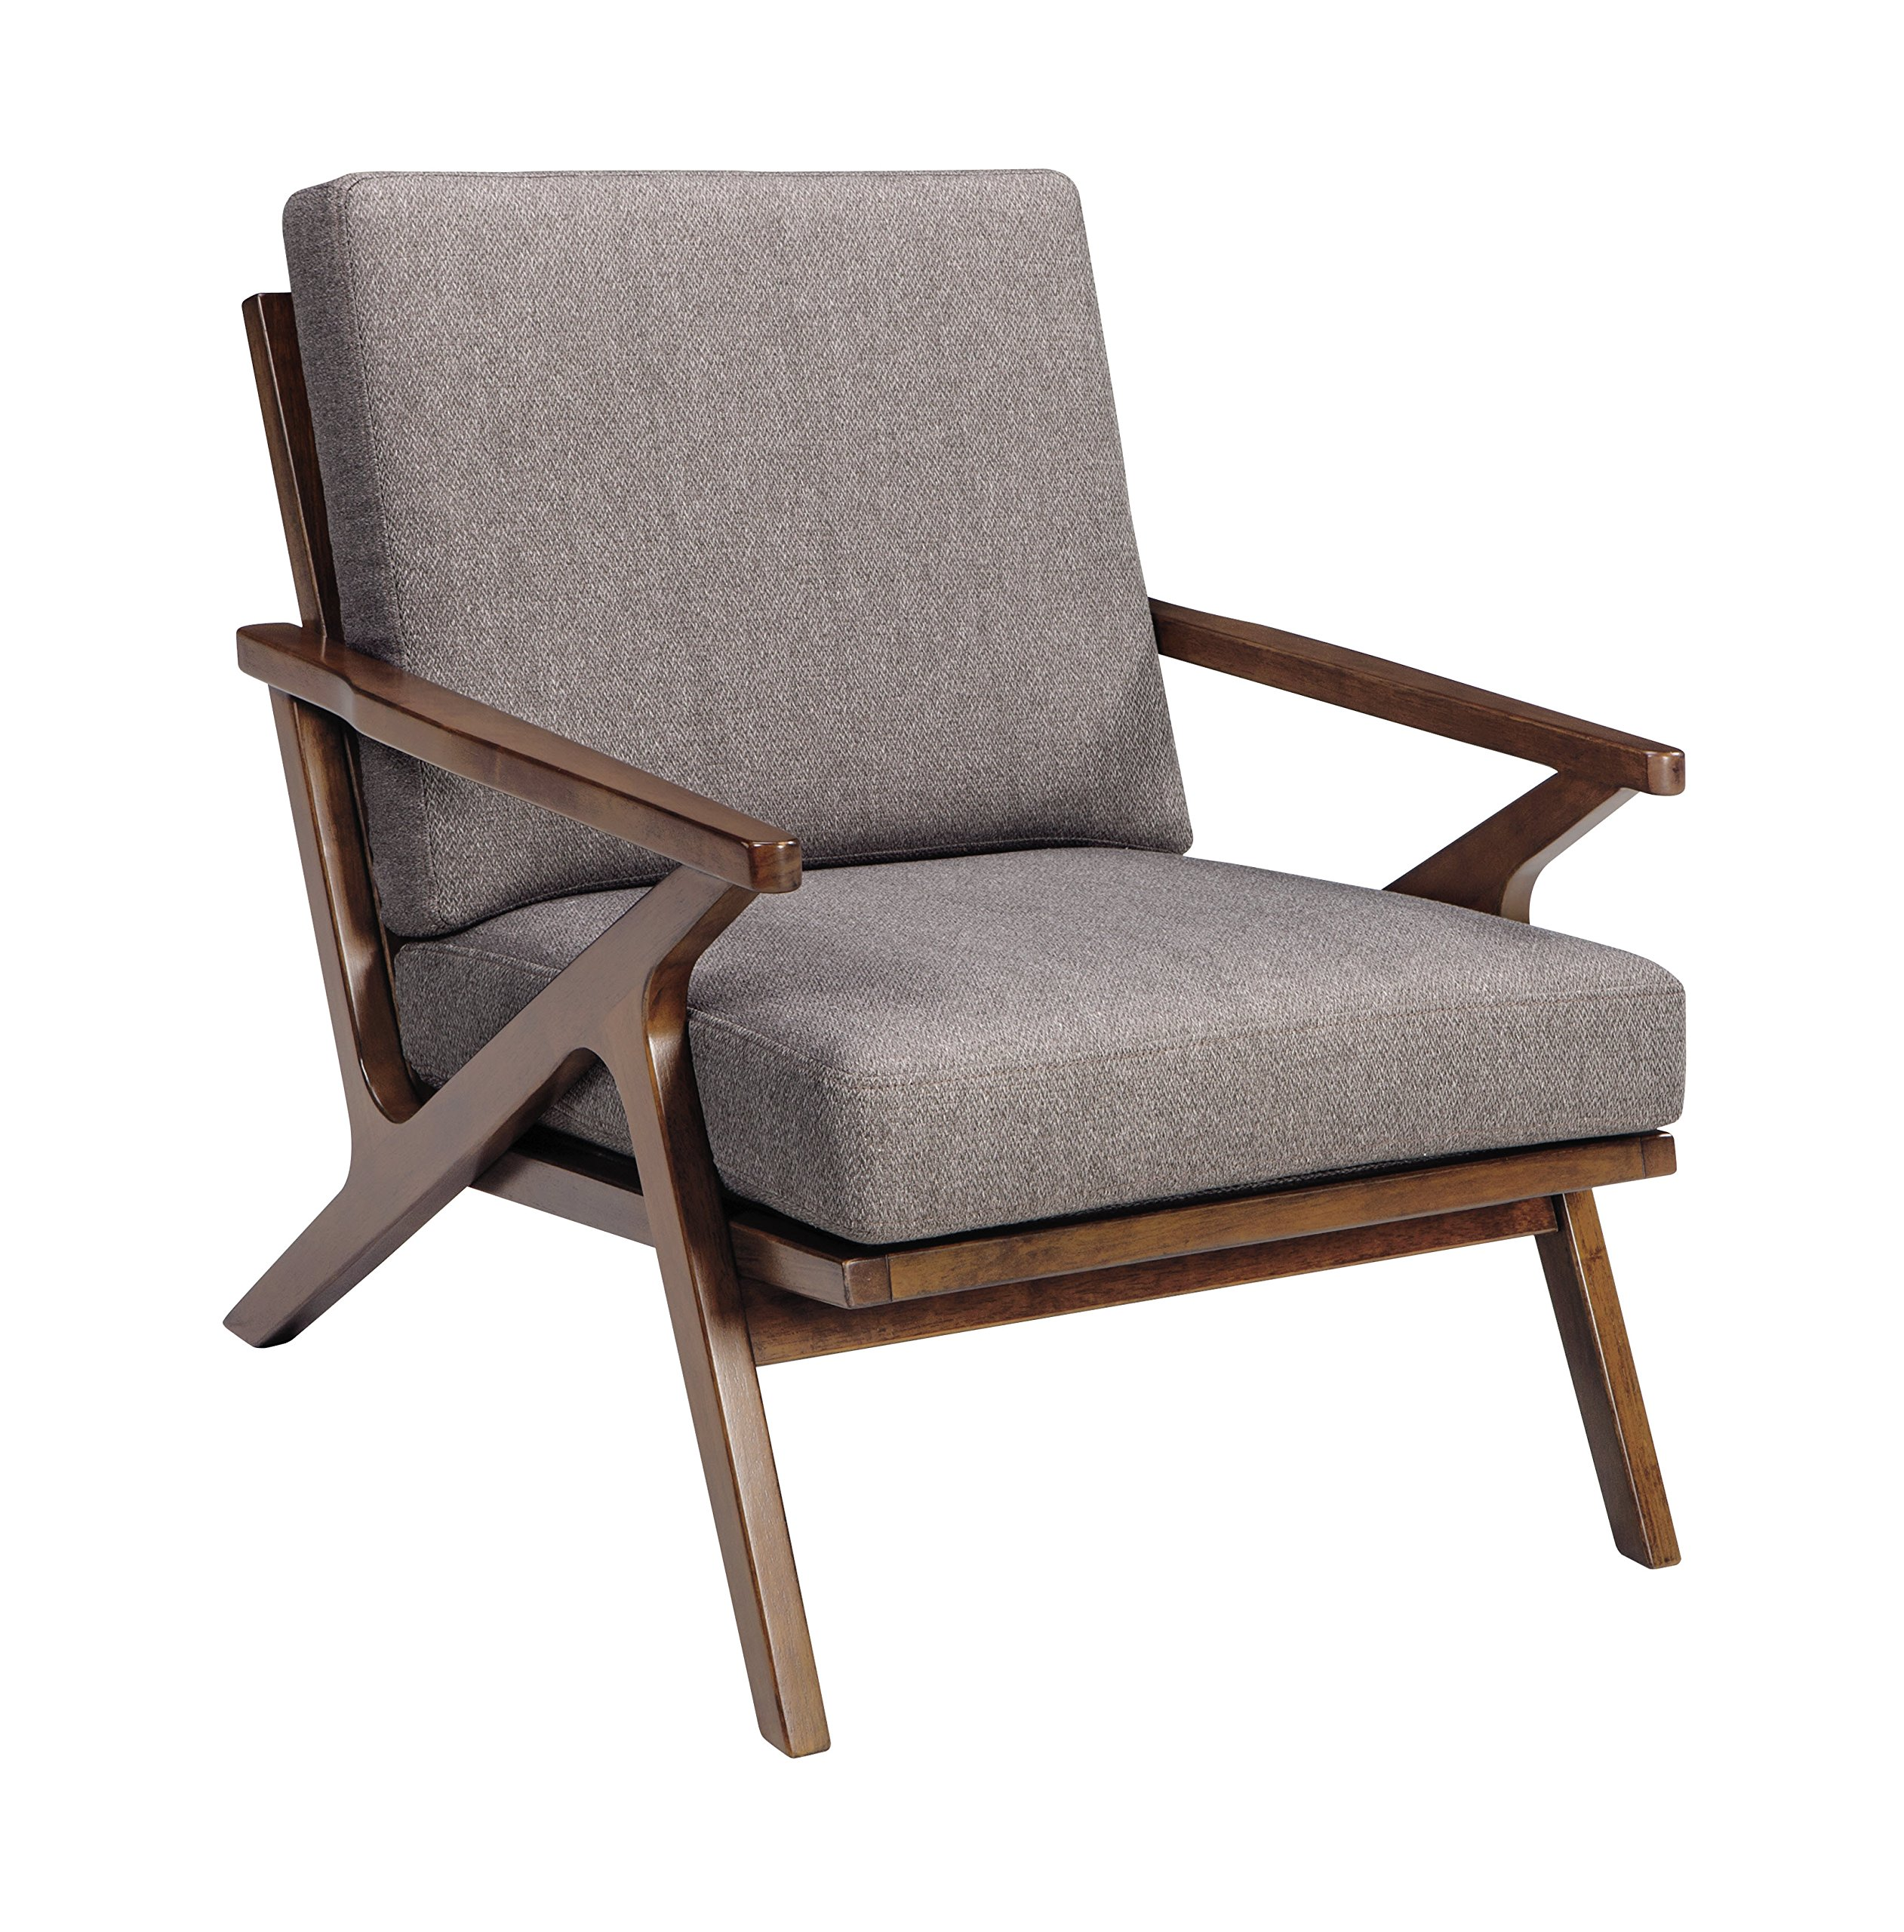 Ashley Furniture Signature Design - Wavecove Accent Chair - Mid Century Modern - Brown Maple-Tone Finish - Beige Linen… - Ashley Casual Wood Chair In Brown Finish A3000032 - living-room-furniture, living-room, accent-chairs - 91lobduWCnL -